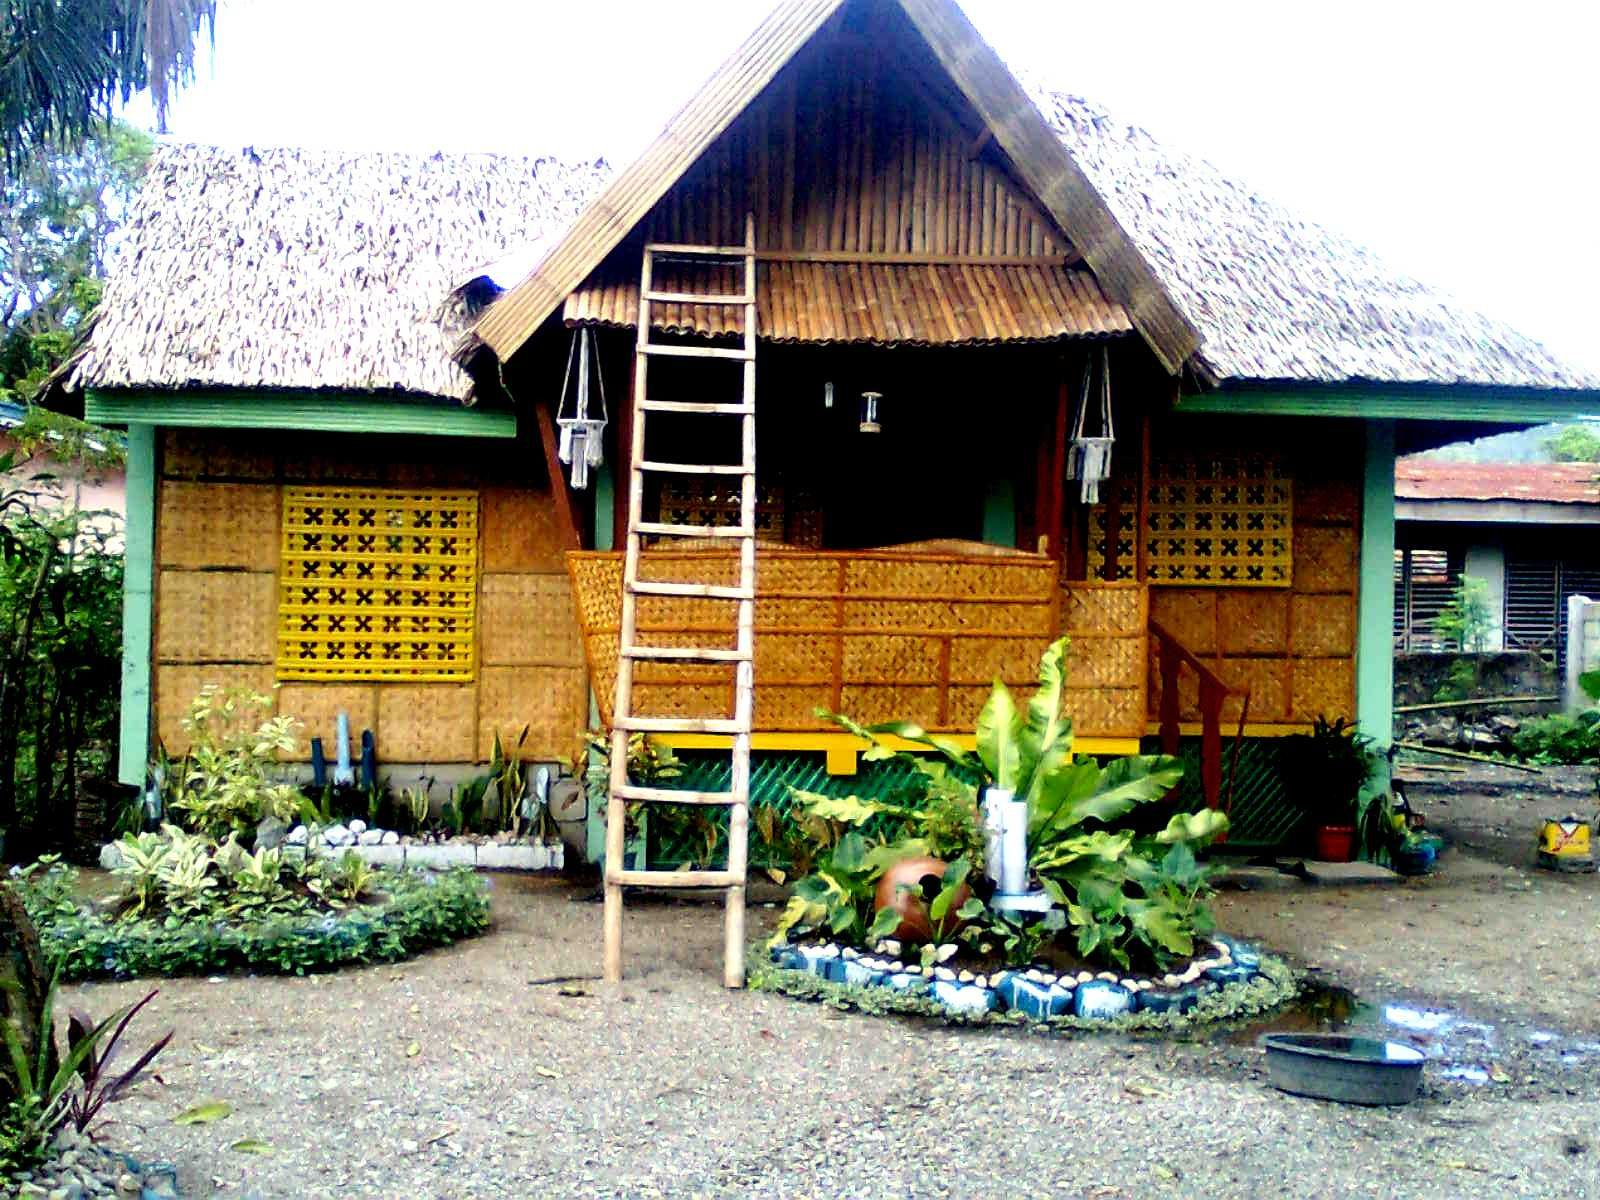 Bahay kubo a very simple rest houseguest house